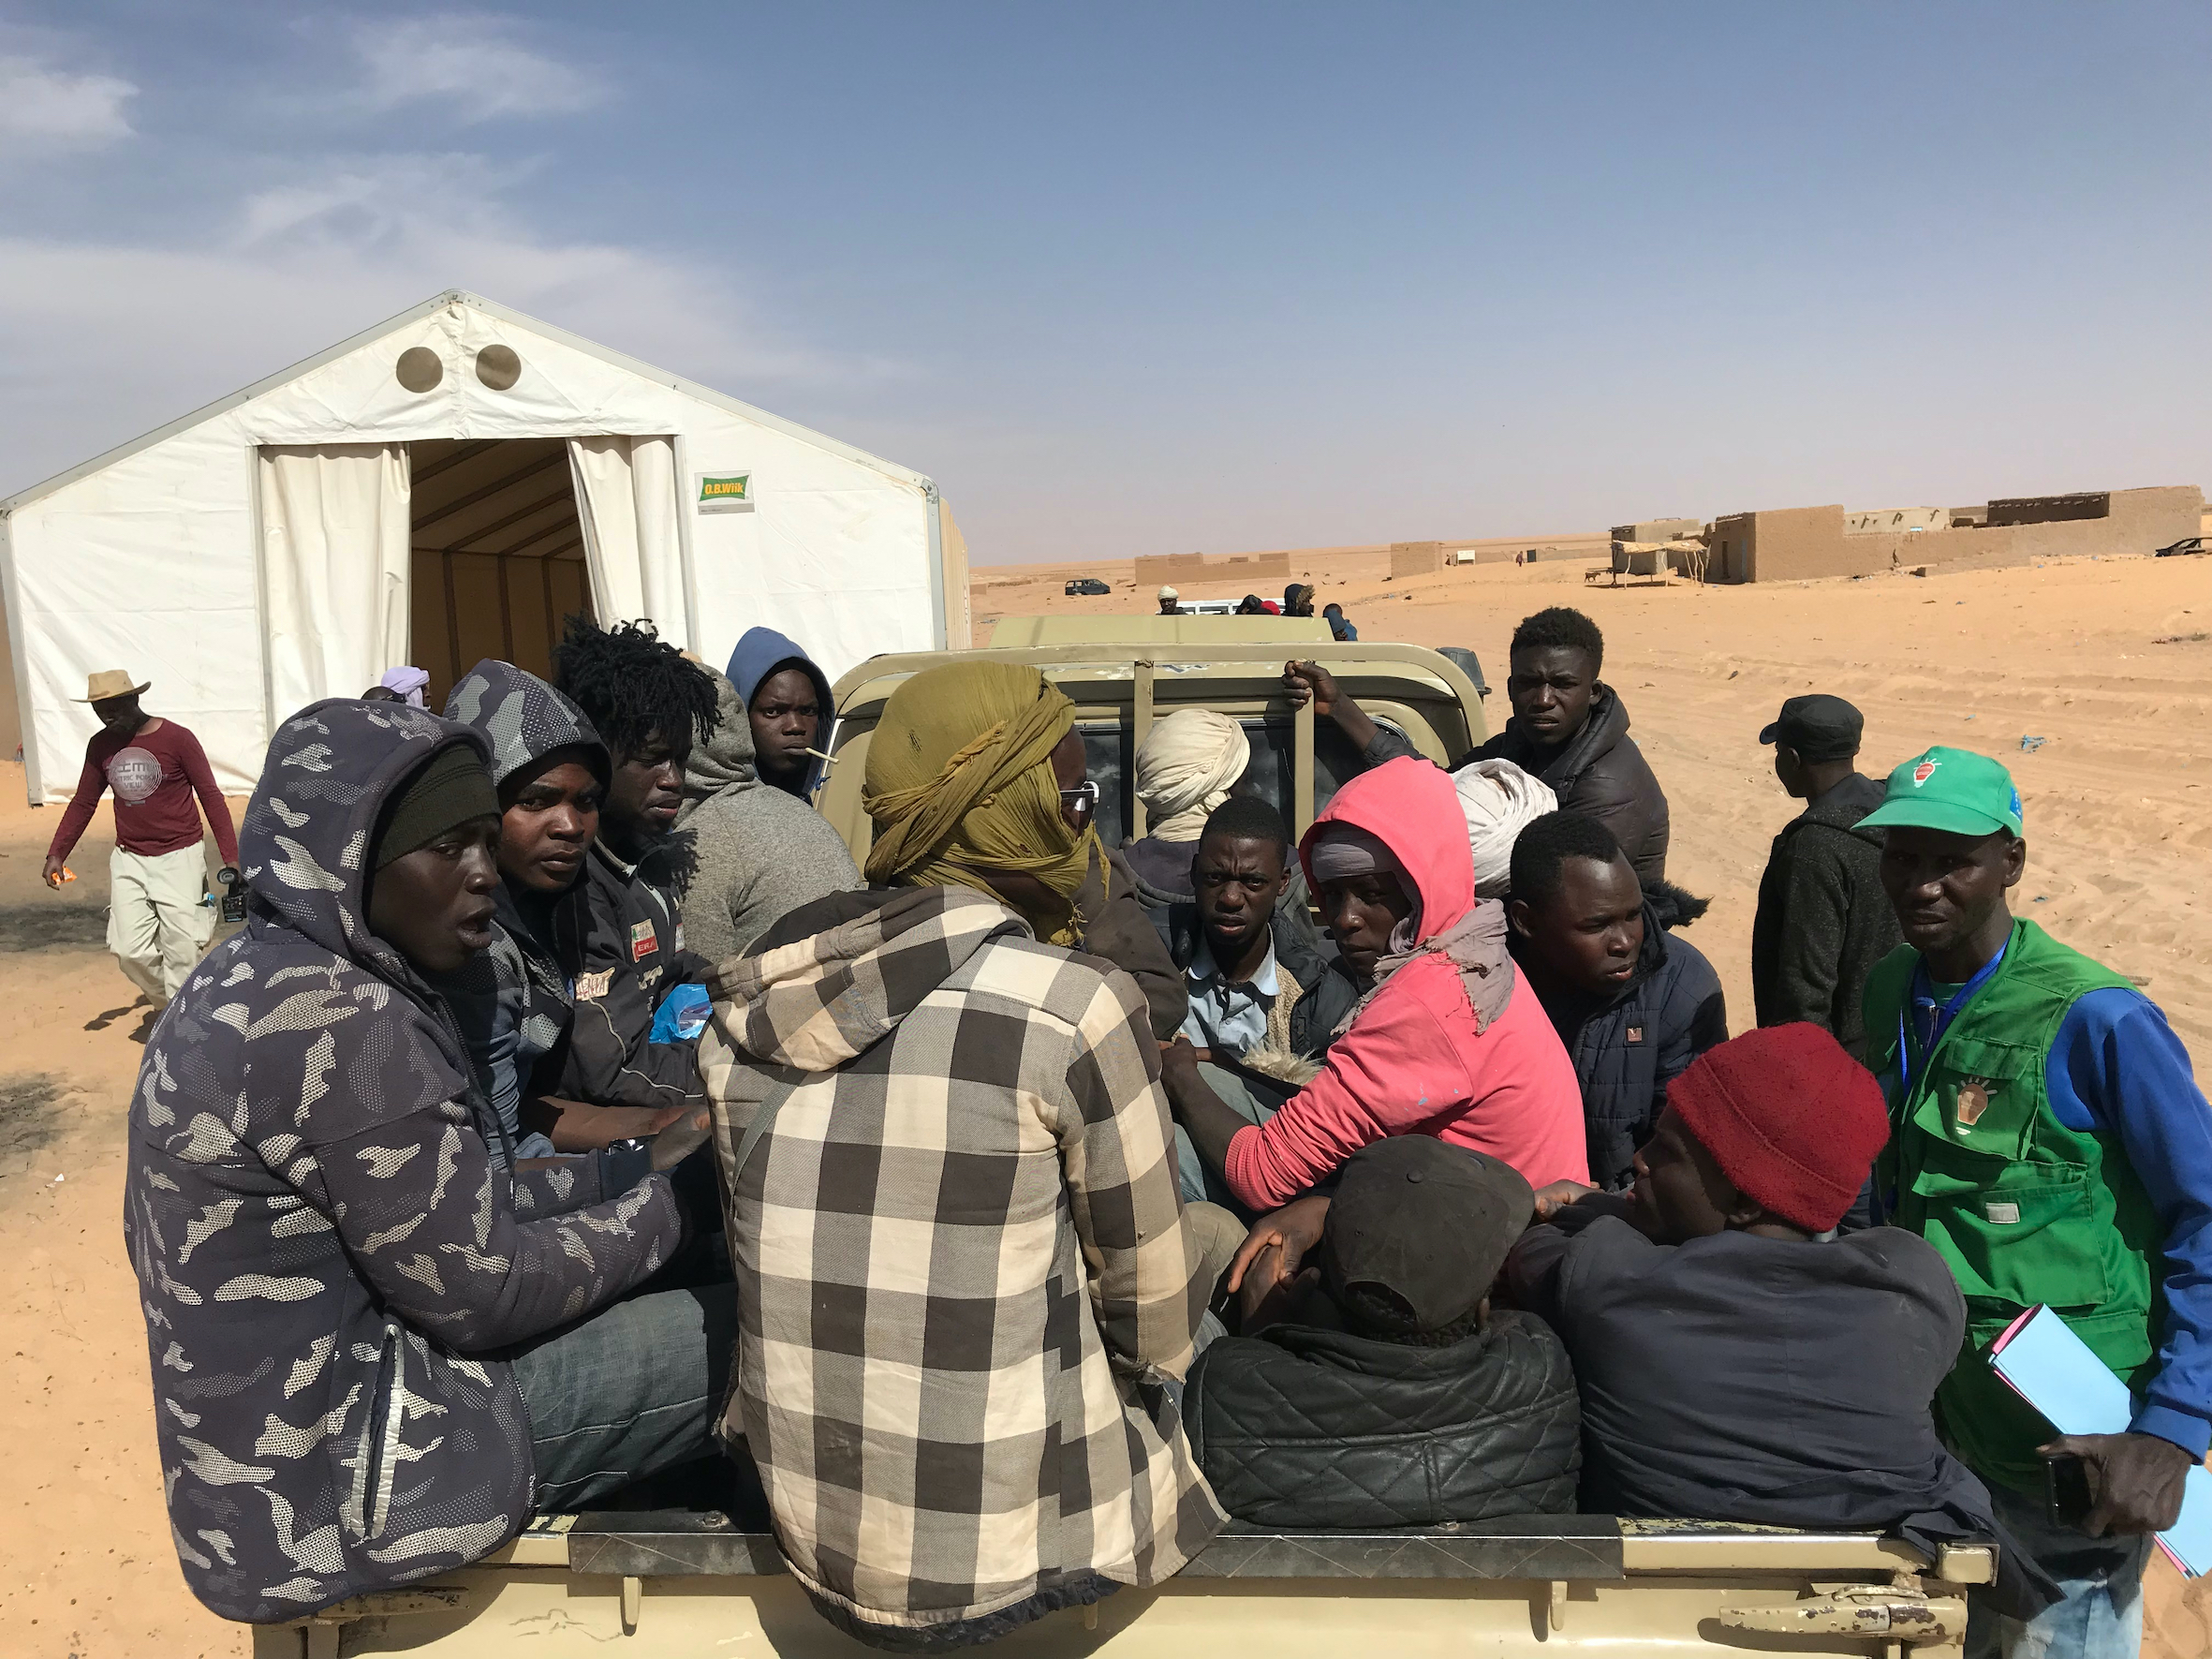 Assamaka, Niger 02-2019 Migrants forcefully arrested in Algeria, transported to the Nigerian border and left without support in the Sahara desert - here seen at IOM support center in Assamaka.